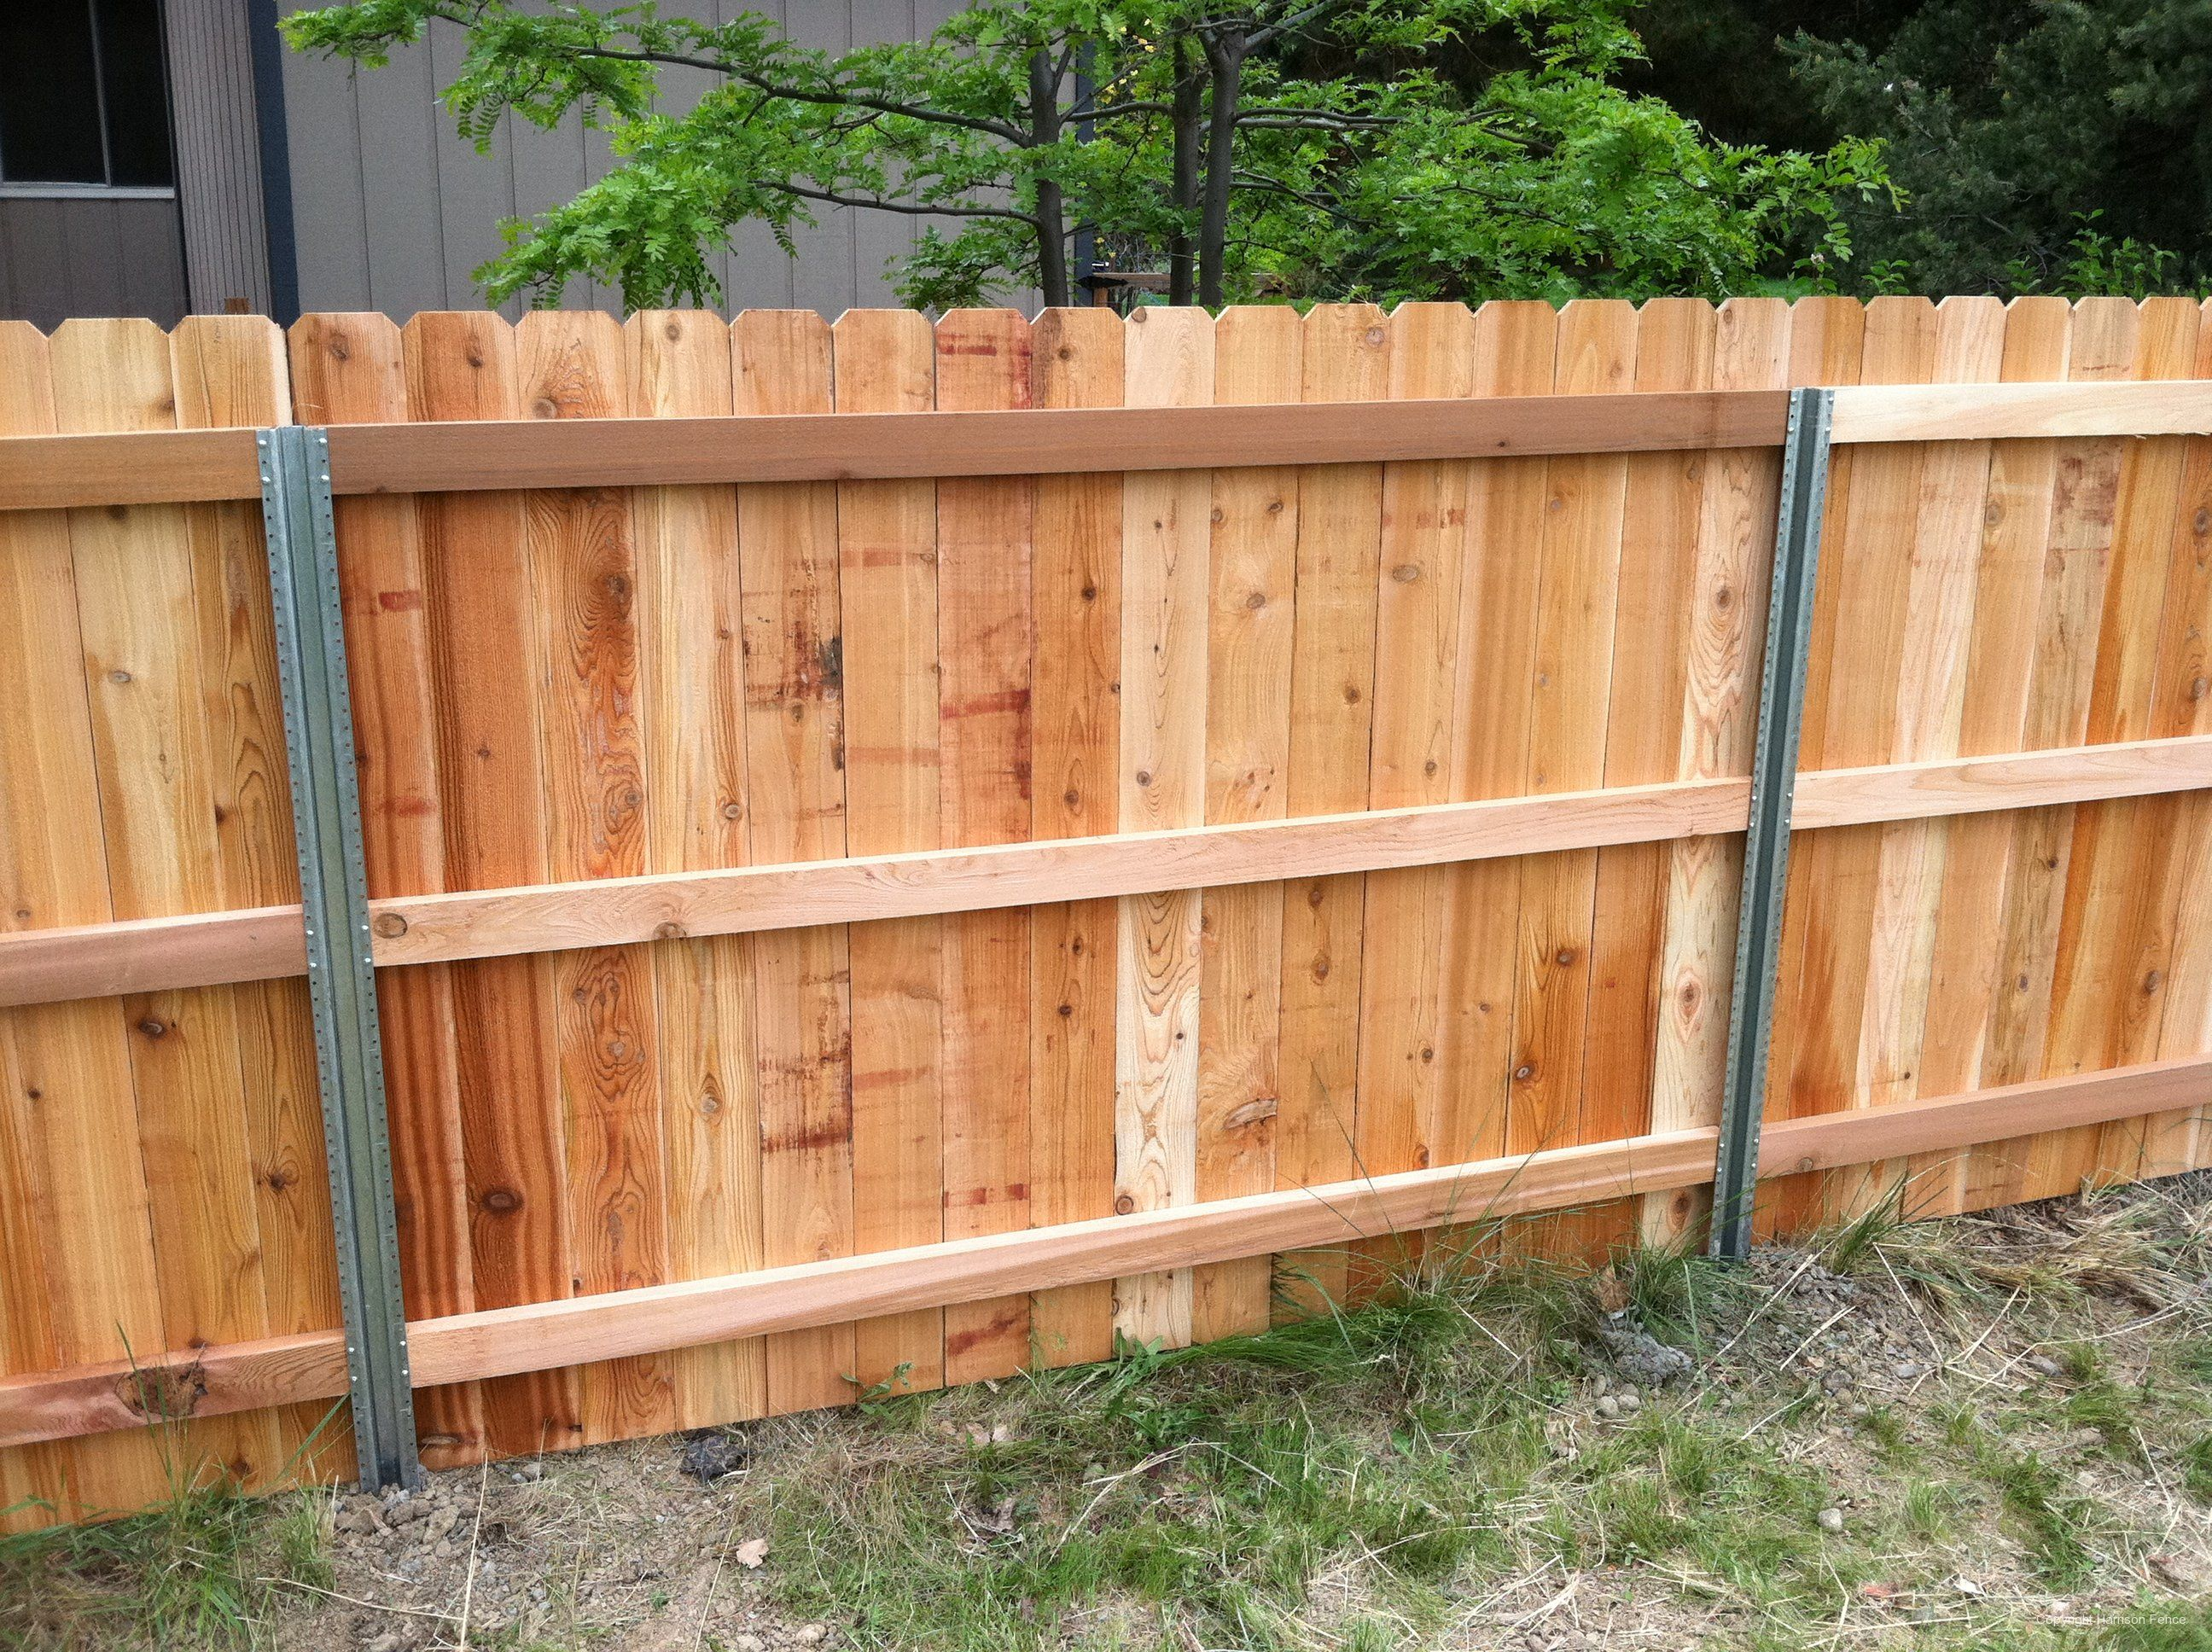 Wood Privacy Fences Wood Fence Post Metal Fence Posts Wood Fence